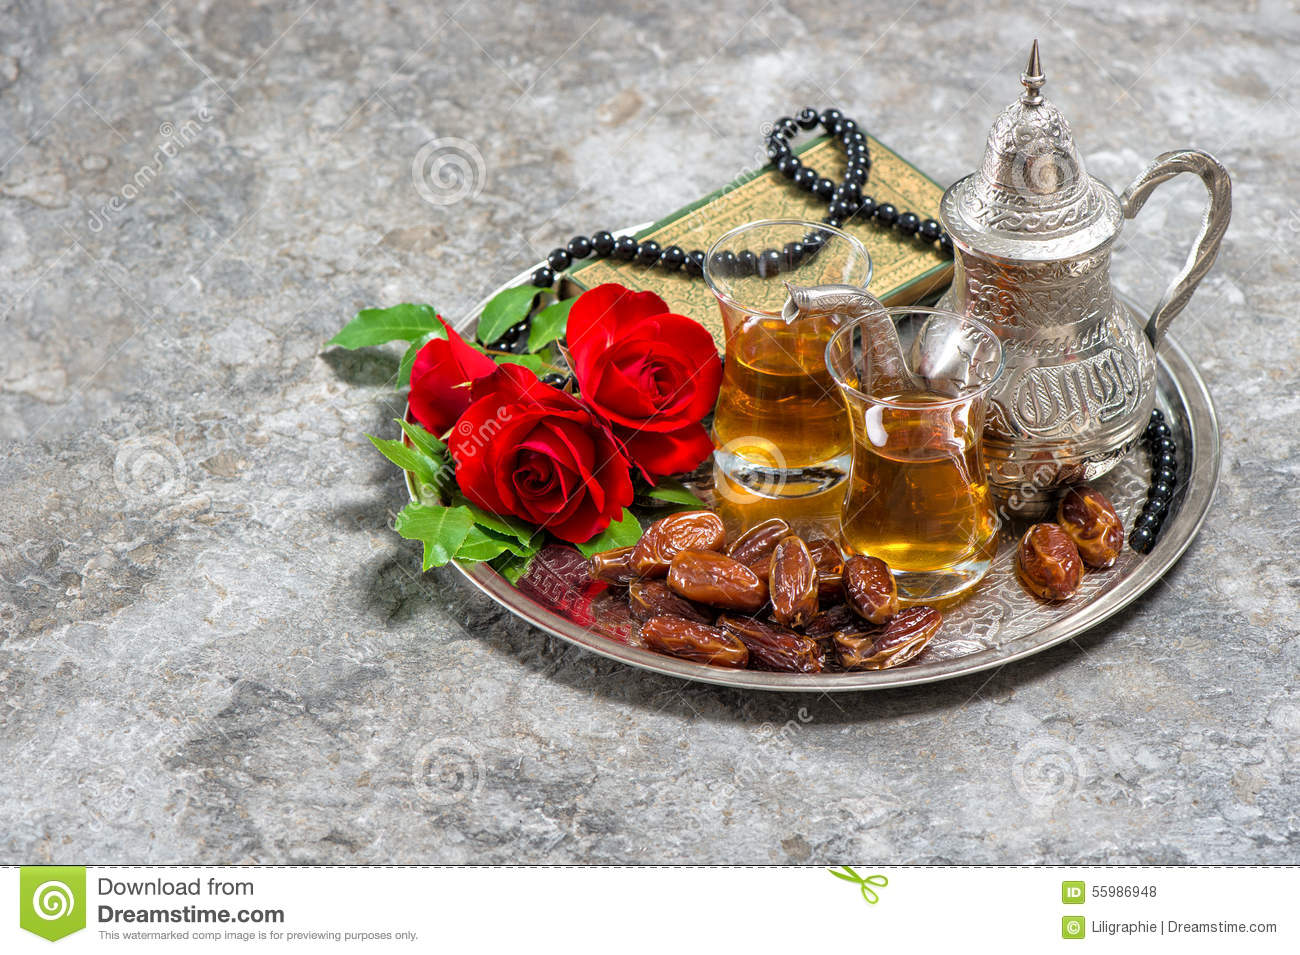 Tea, dates fruits, red rose flower, holy book quran and rosary.